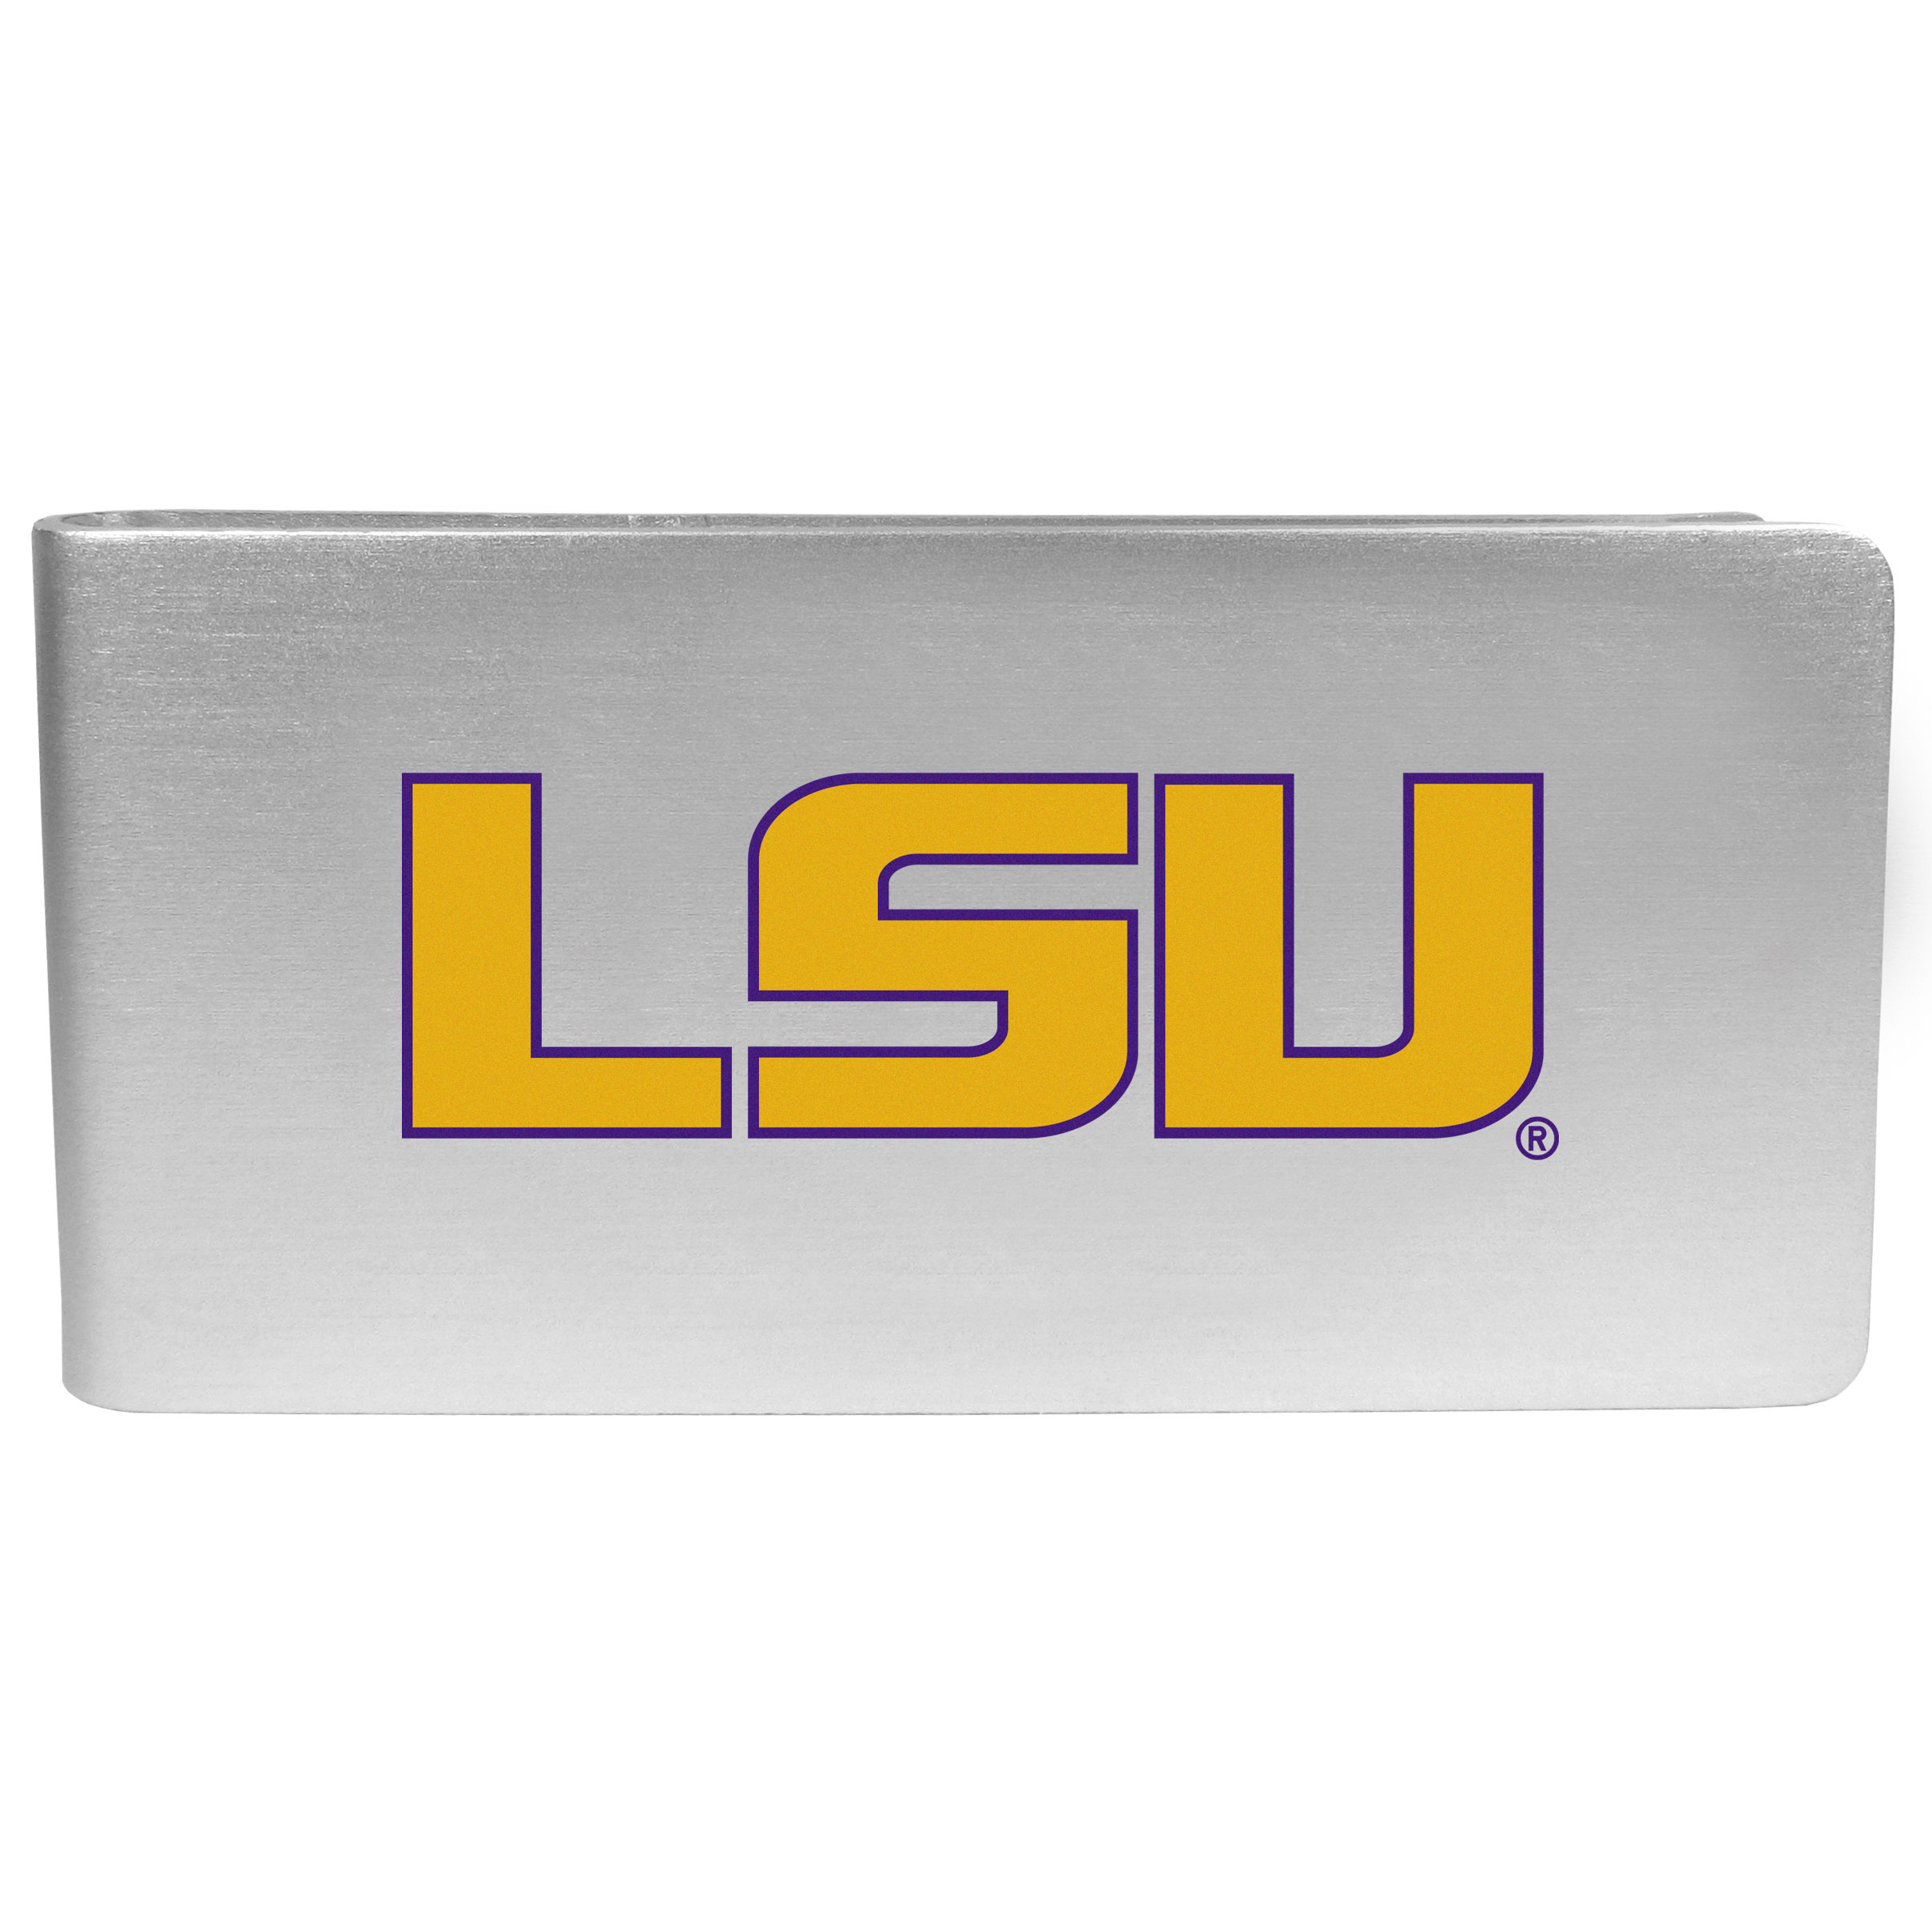 LSU Tigers Logo Money Clip - Our brushed metal money clip has classic style and functionality. The attractive clip features the LSU Tigers logo expertly printed on front.